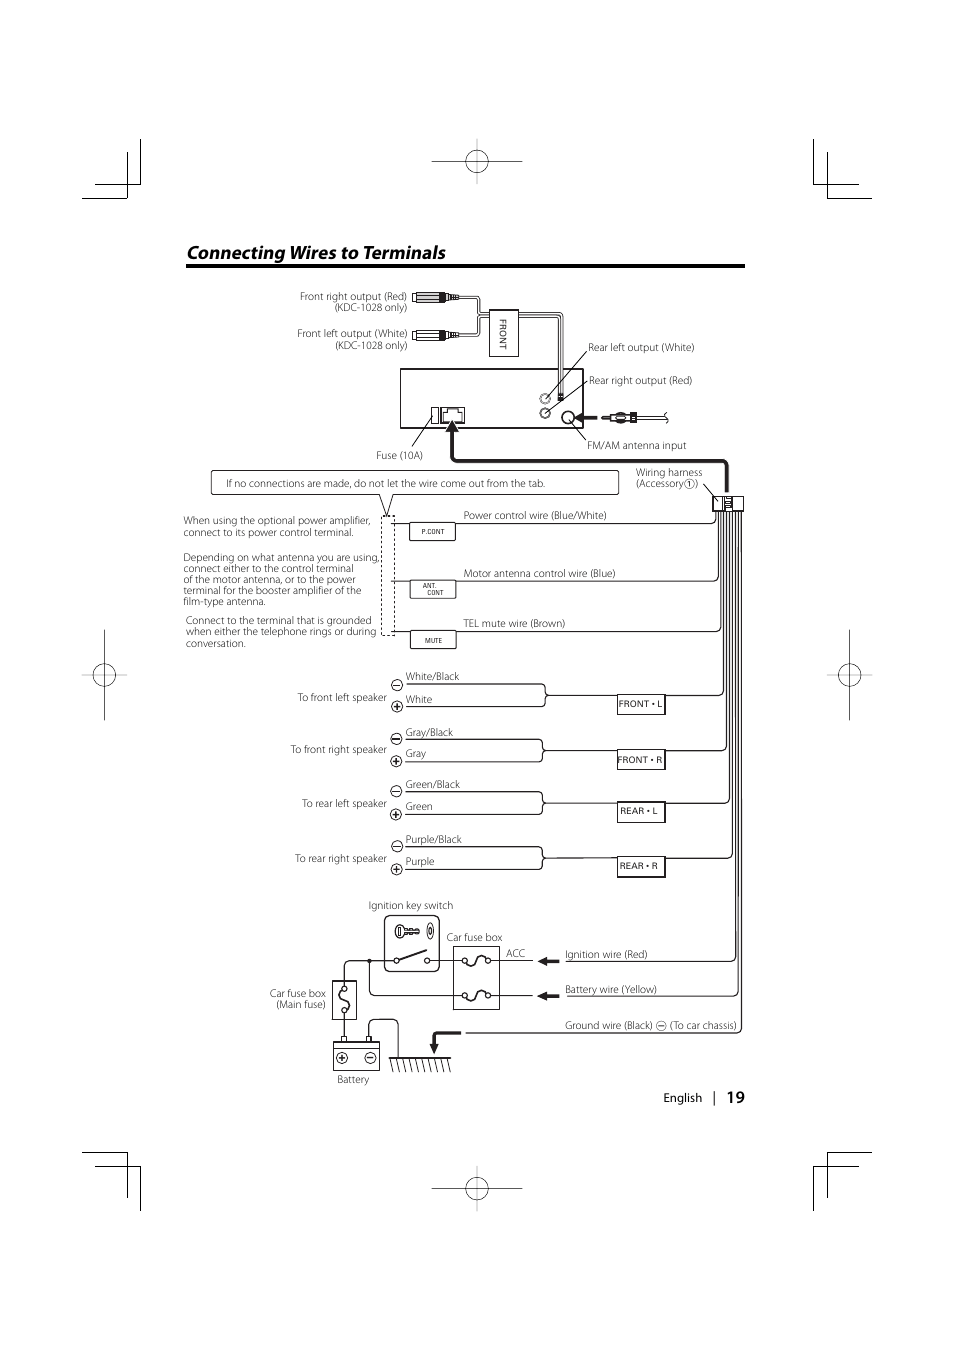 kenwood kdc mp225 wiring diagram moreover wiring diagramkenwood kdc mp225 wiring diagram moreover free downloadkenwood kdc mp225 wiring diagram moreover kenwood kdc 210u